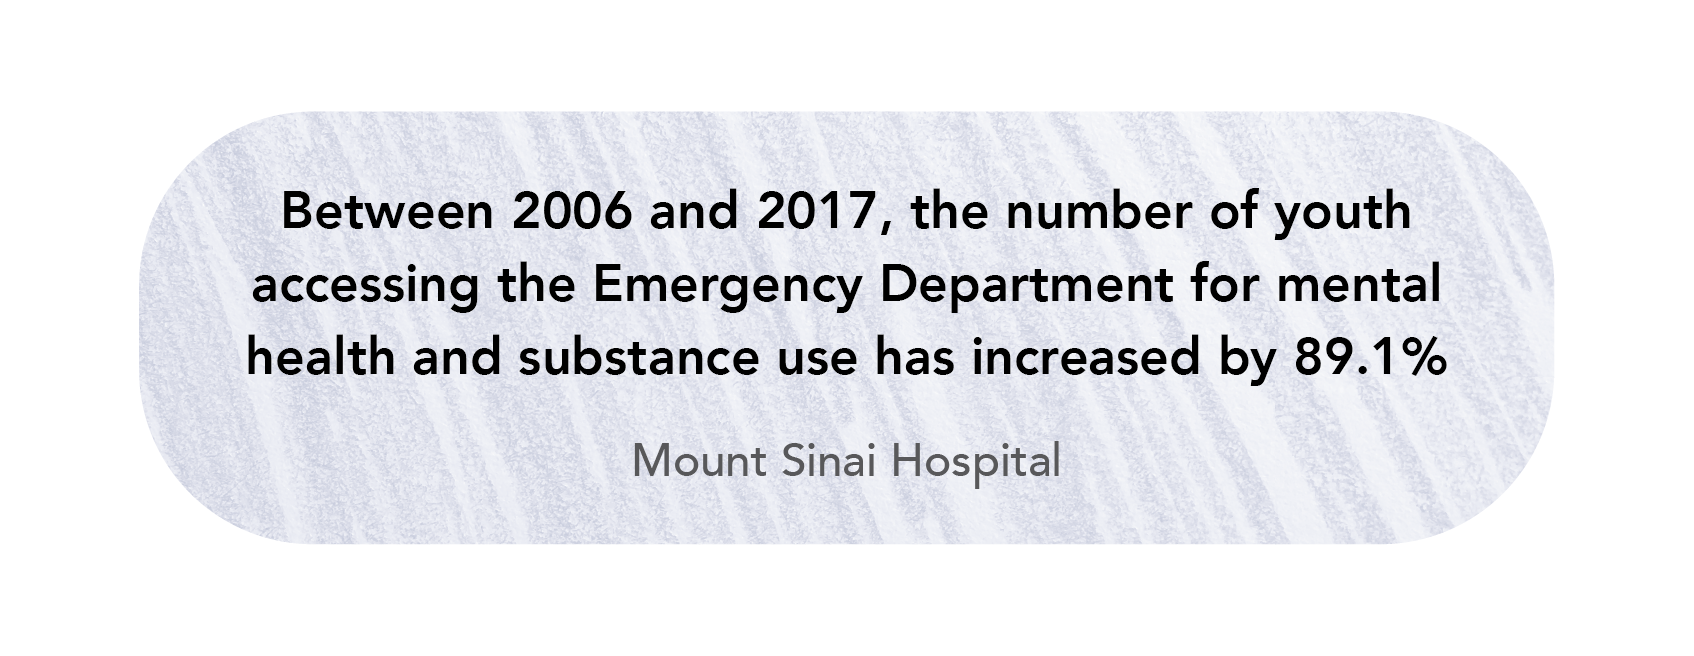 """A box filled with purple crayon texture and a quote """"Between 2006 and 2017, the number of youth accessing the Emergency Department for mental health and substance use has increased by 89.1% 'Mount Sinai Hospital"""""""